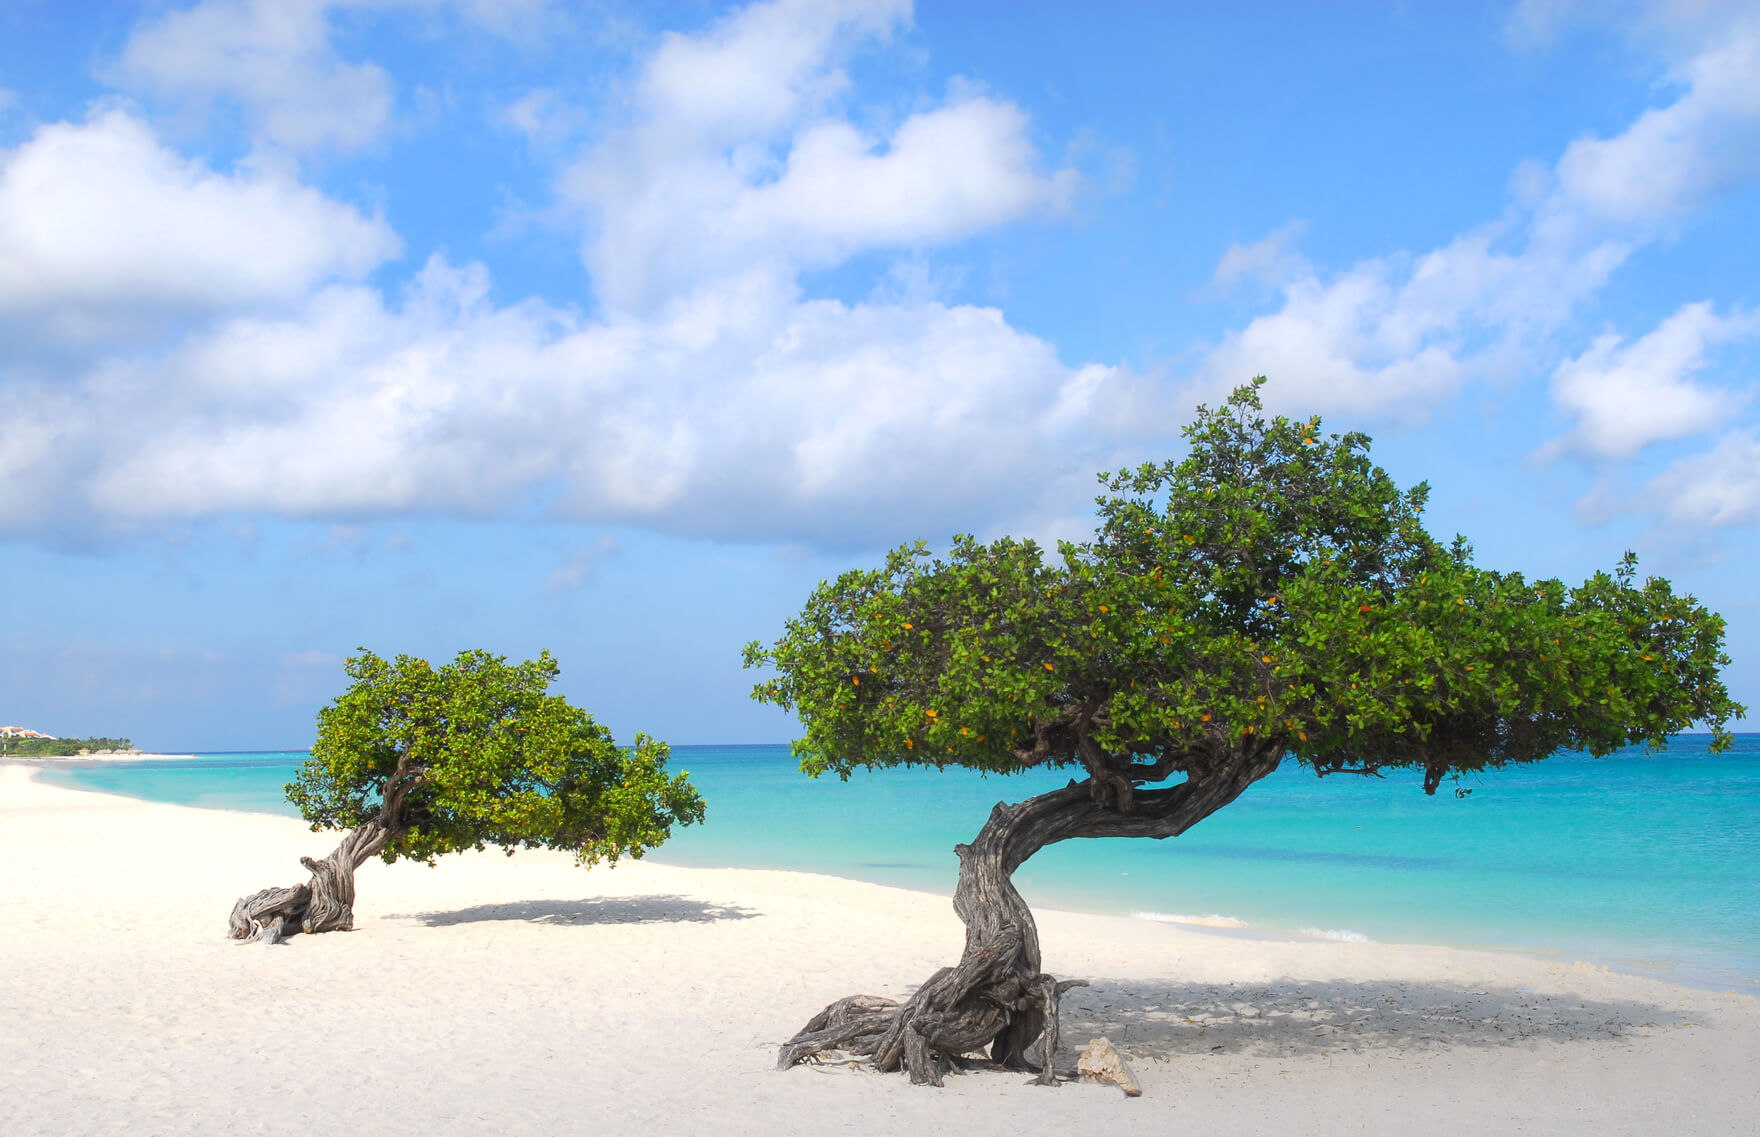 SUMMER: Non-stop from Chicago to Aruba for only $240 roundtrip (Jun-Nov dates)